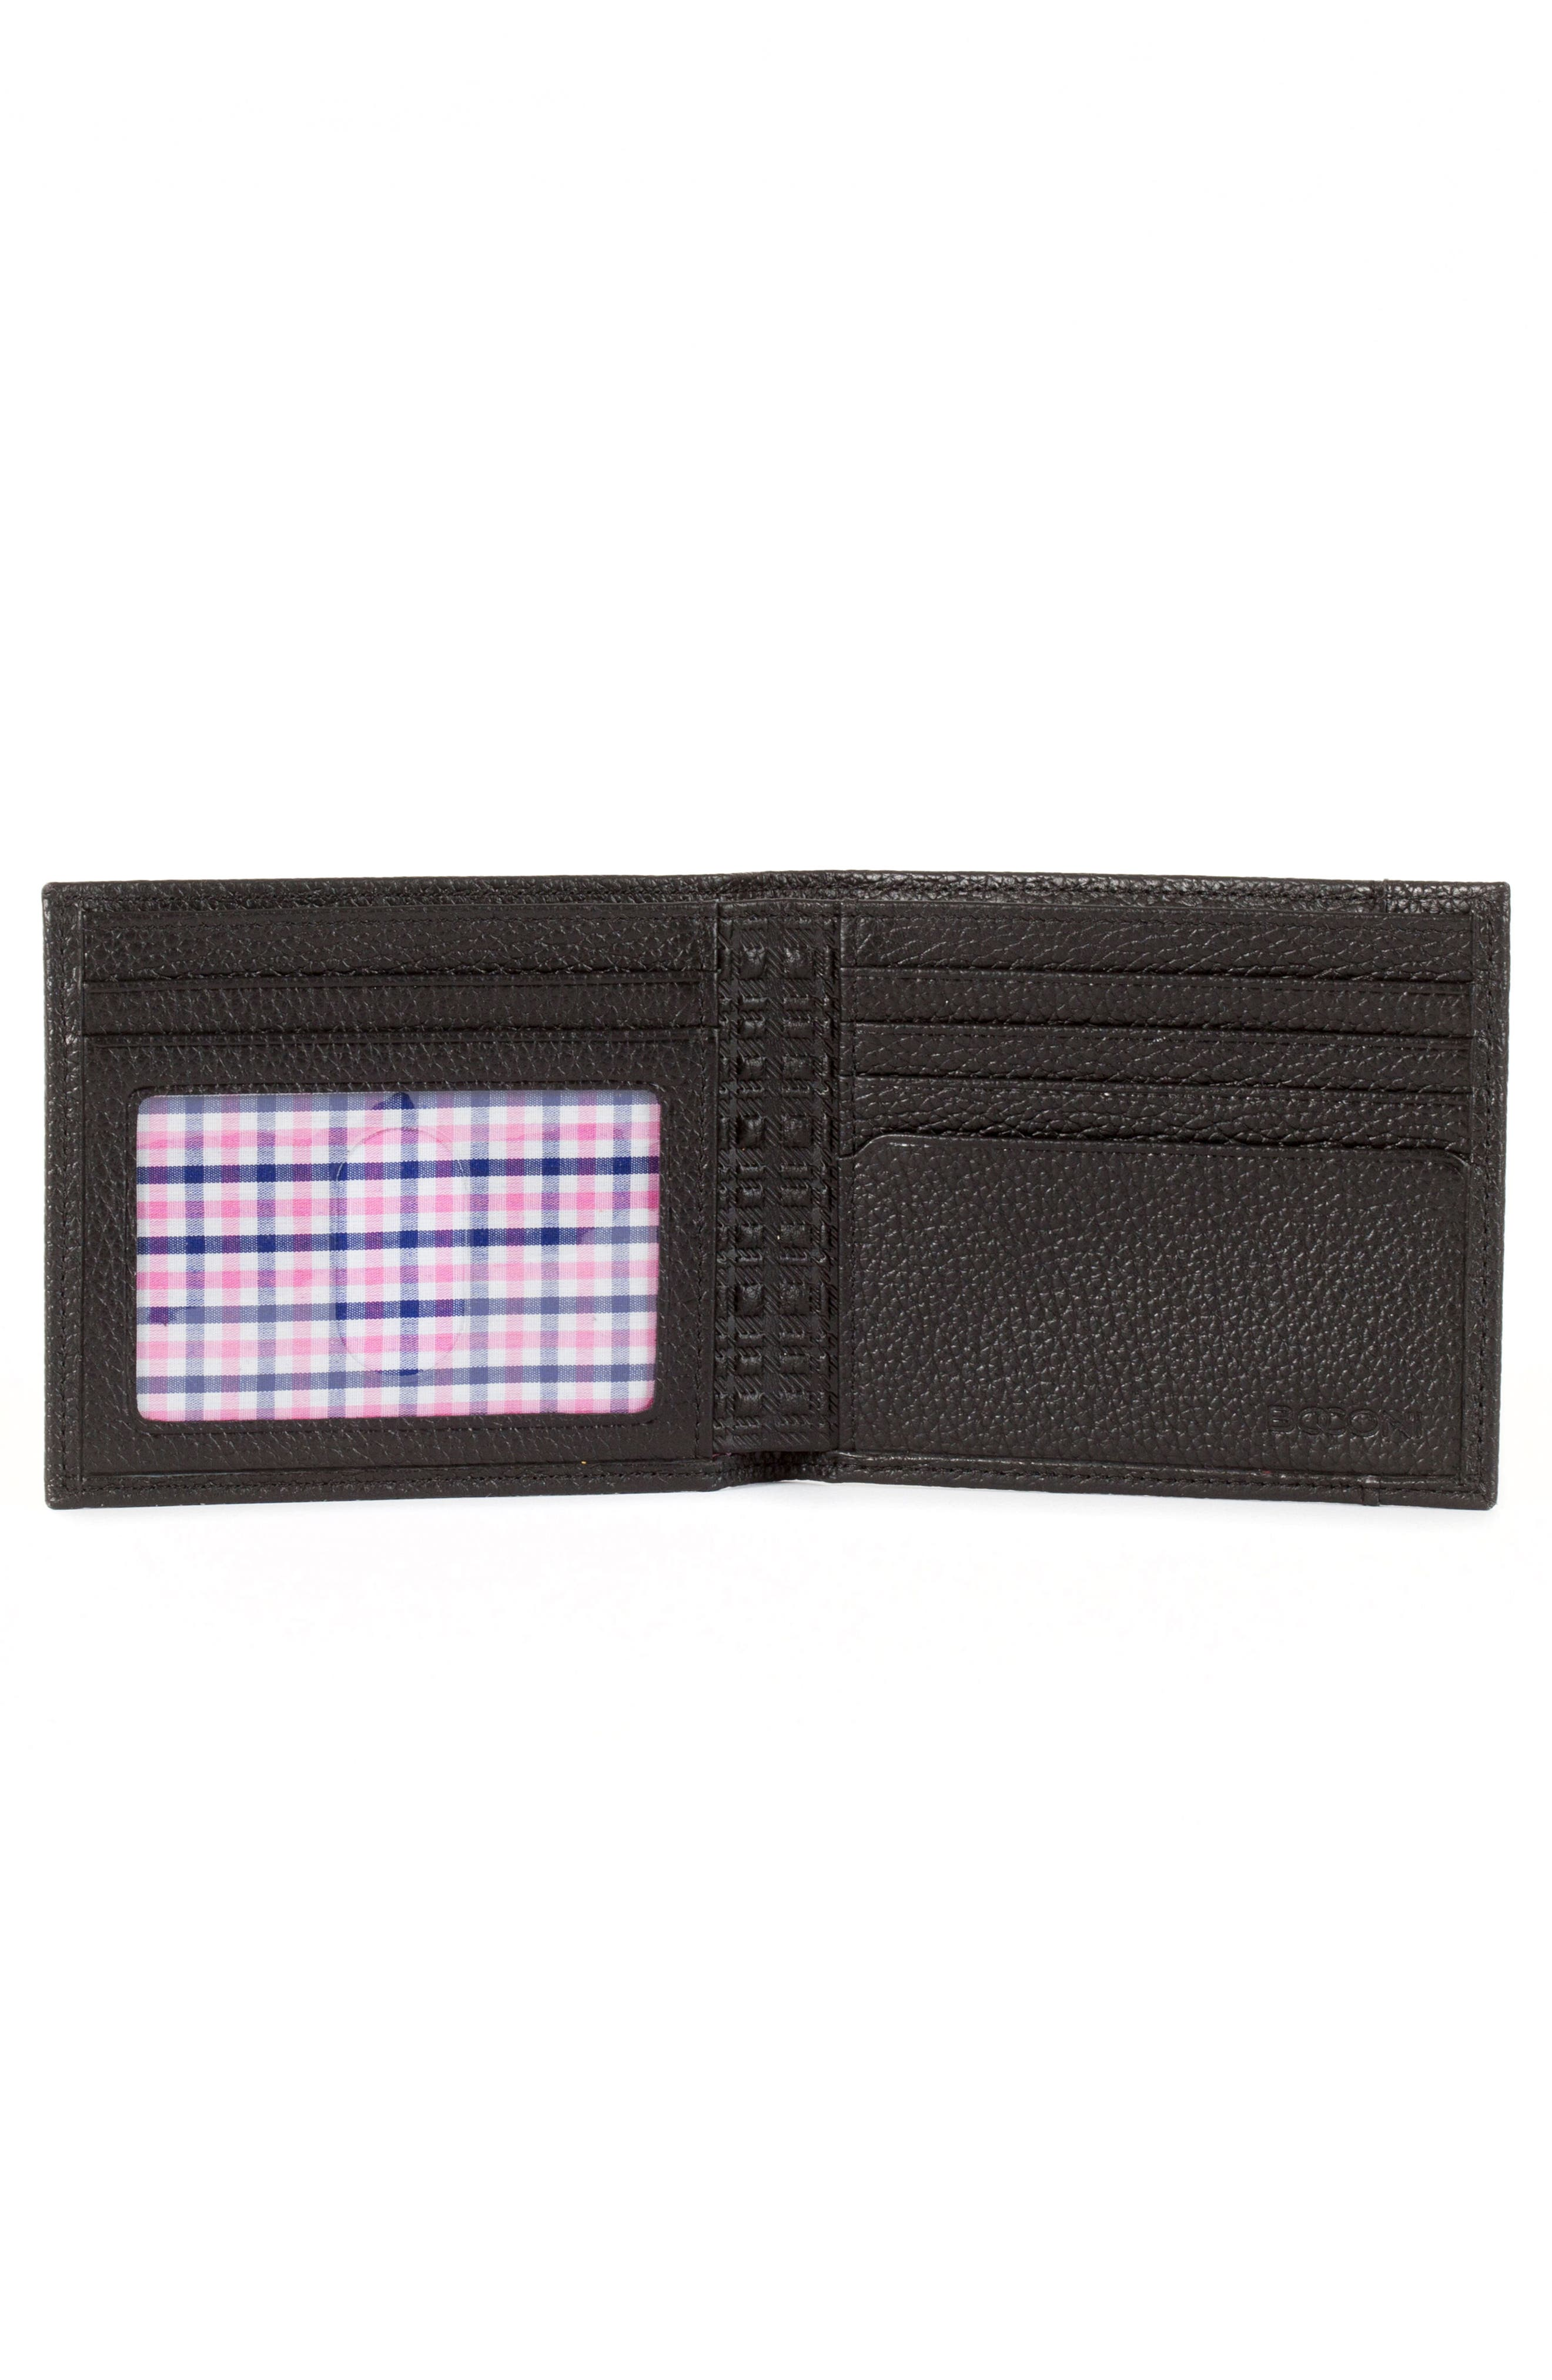 Garth Leather Bifold Wallet,                             Alternate thumbnail 2, color,                             001